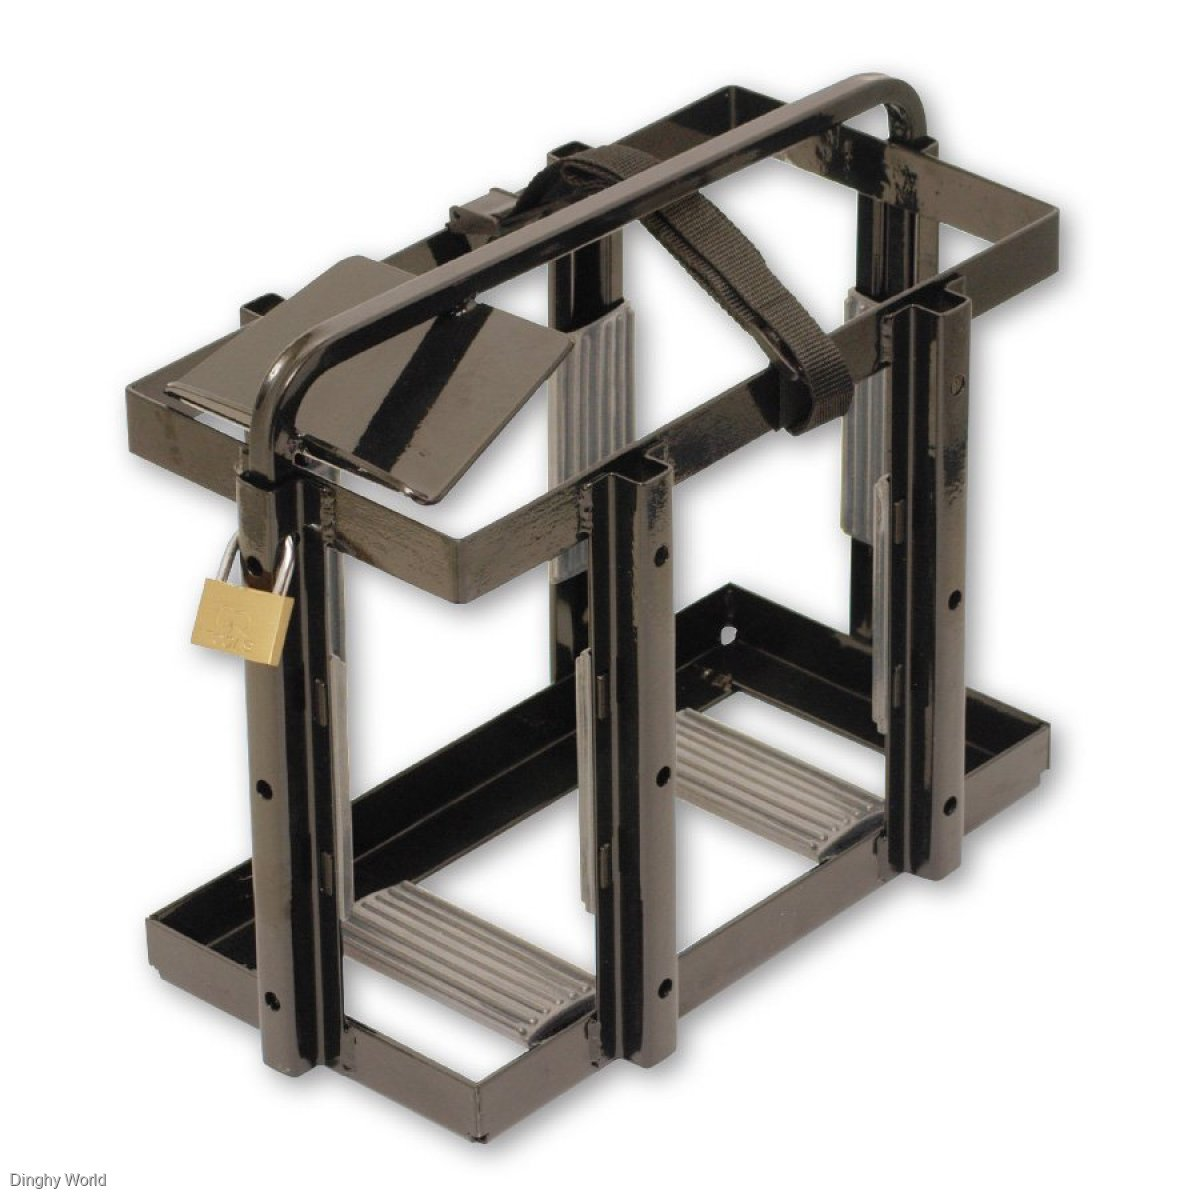 ARK JERRY CAN HOLDER - TOP LOAD - WITH PADLOCK ONLY $ 65.00